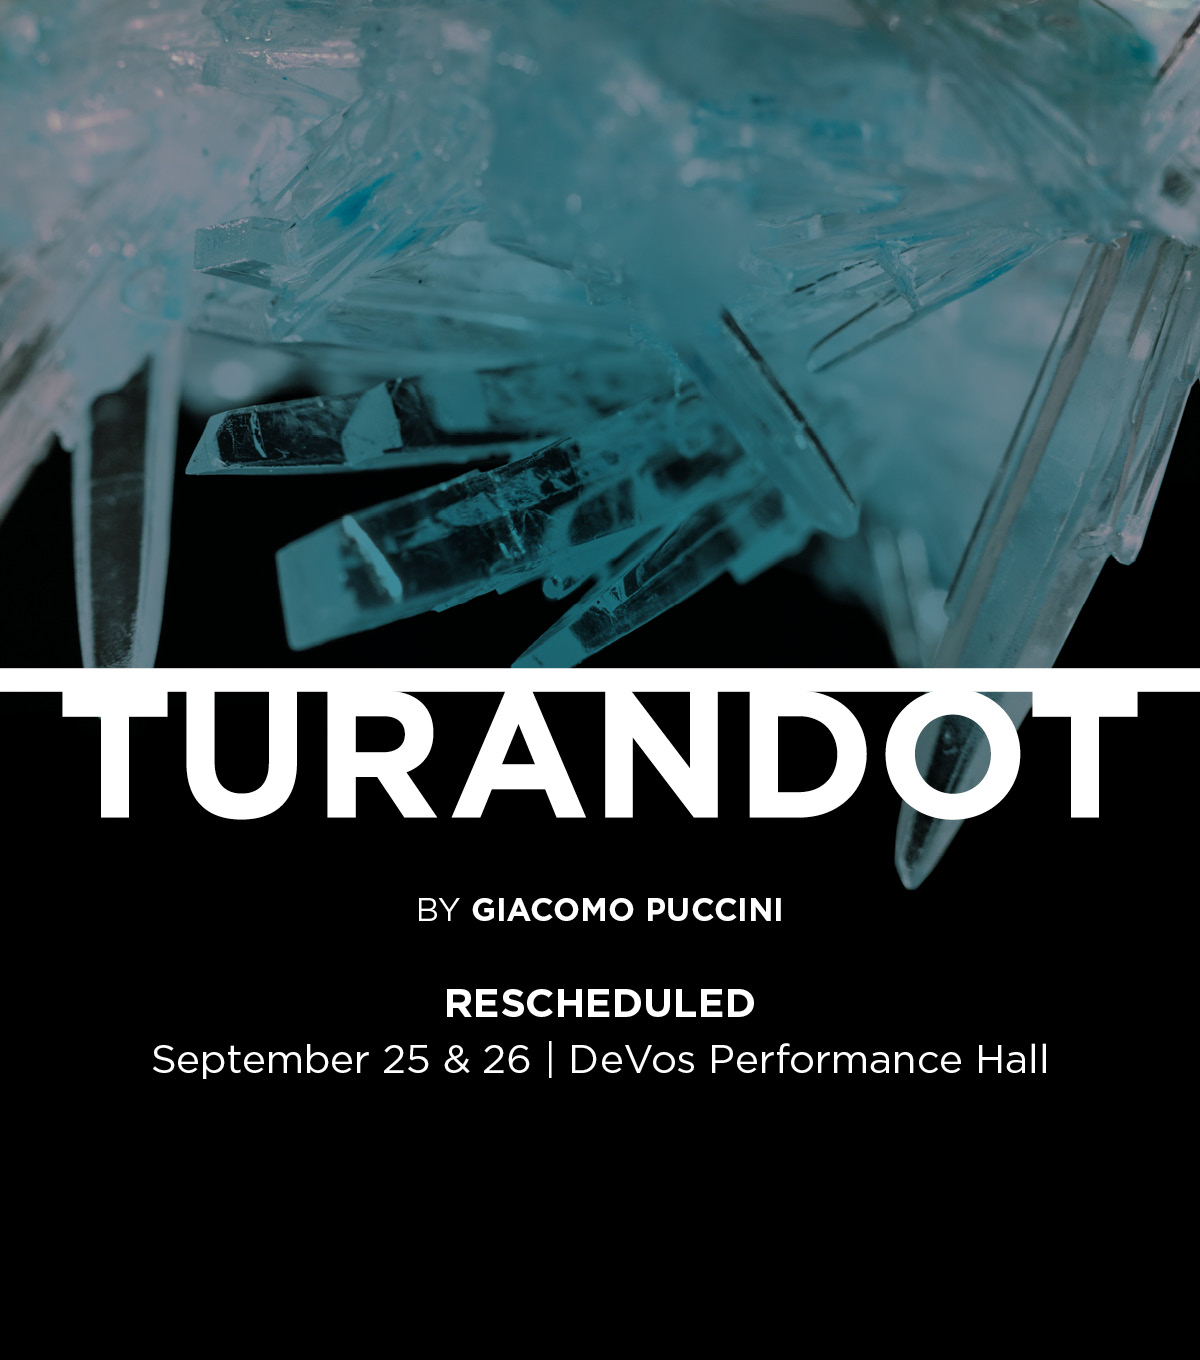 Turandot by Giacomo Puccini - Rescheduled - September 25 & 26 - DeVos Performance Hall